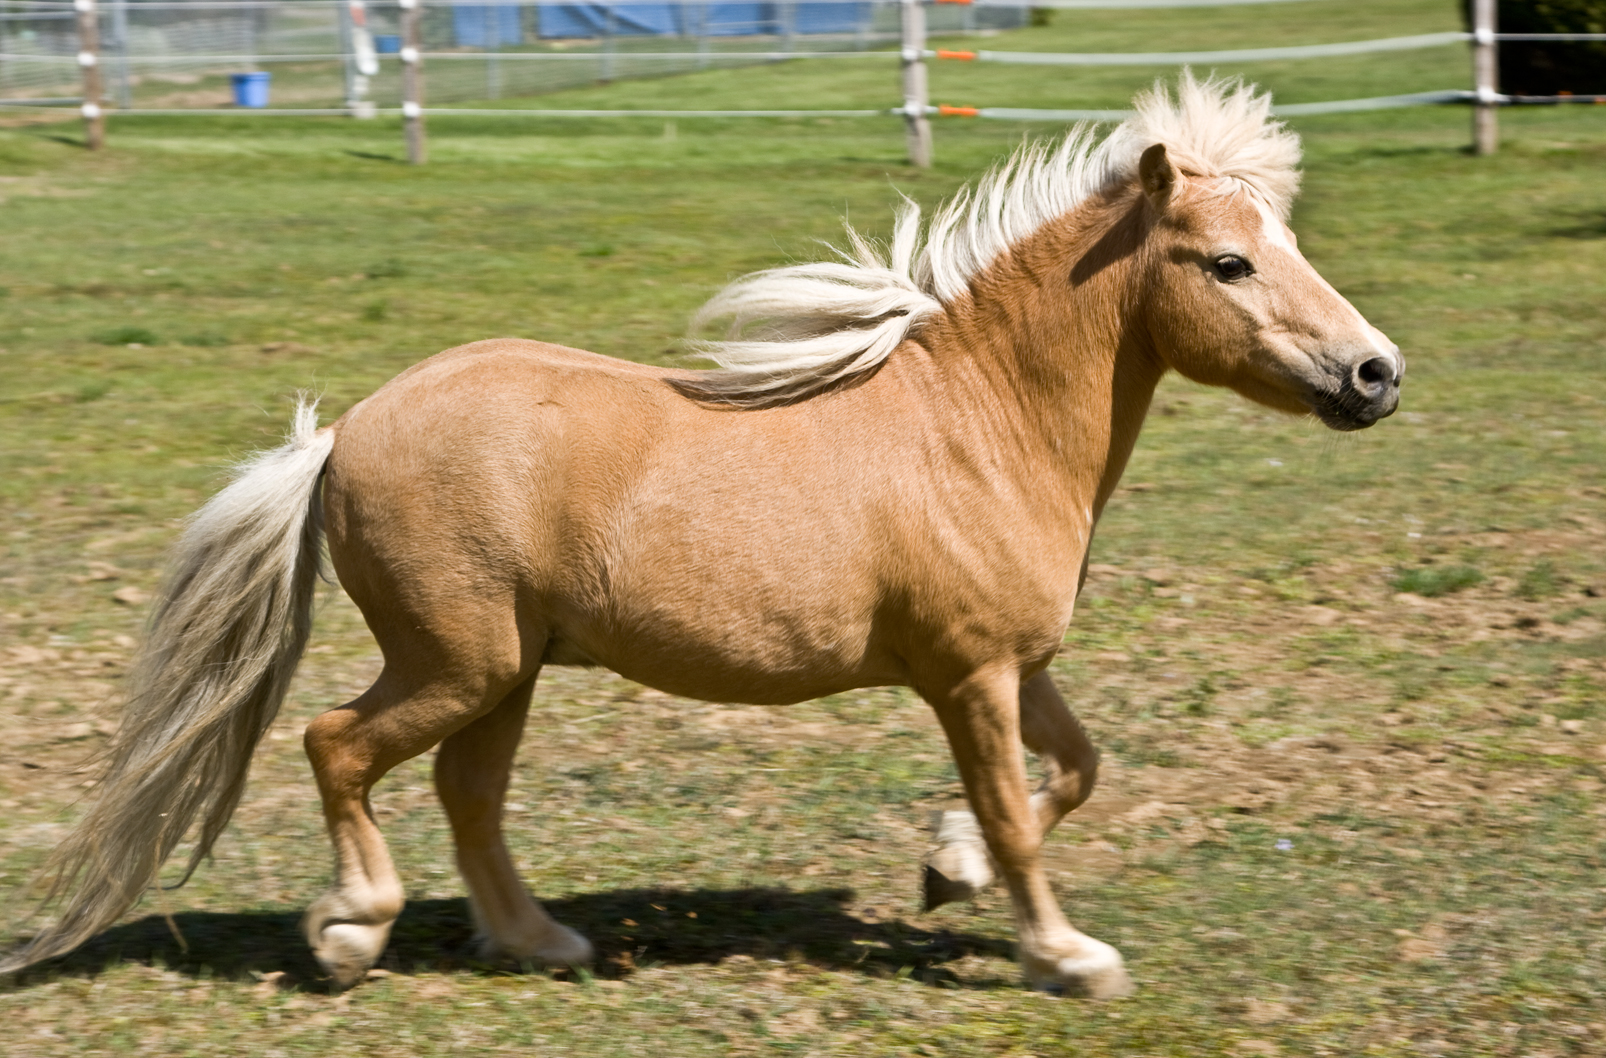 File:Miniature horse.jpg